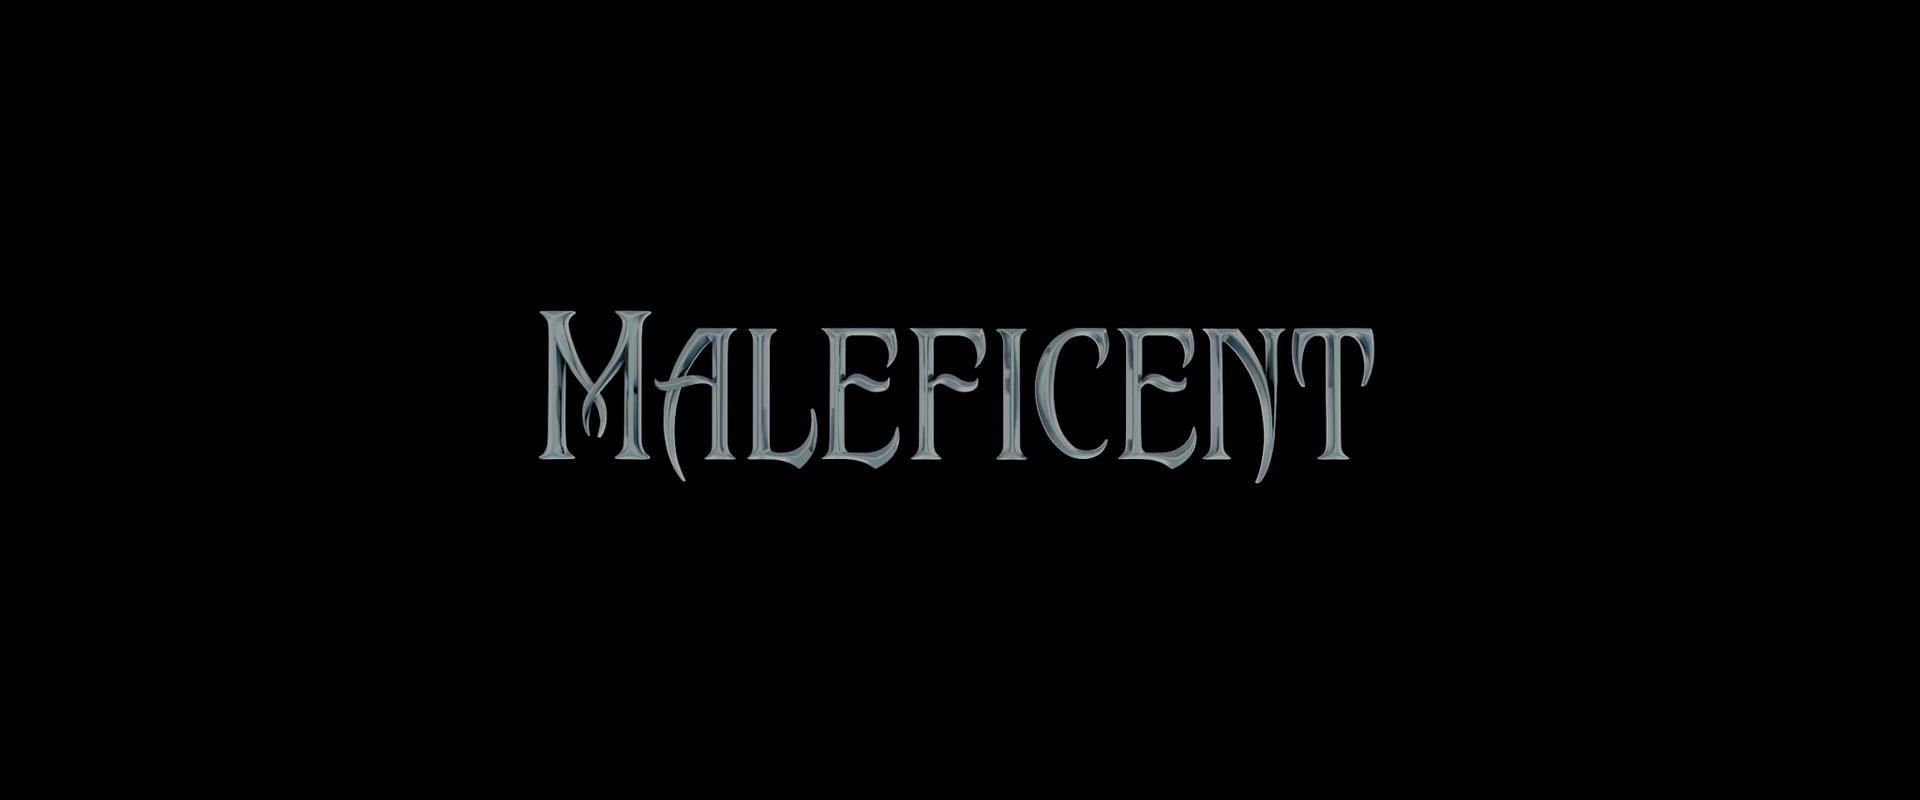 Maleficent Film And Television Wikia Fandom Powered By Wikia